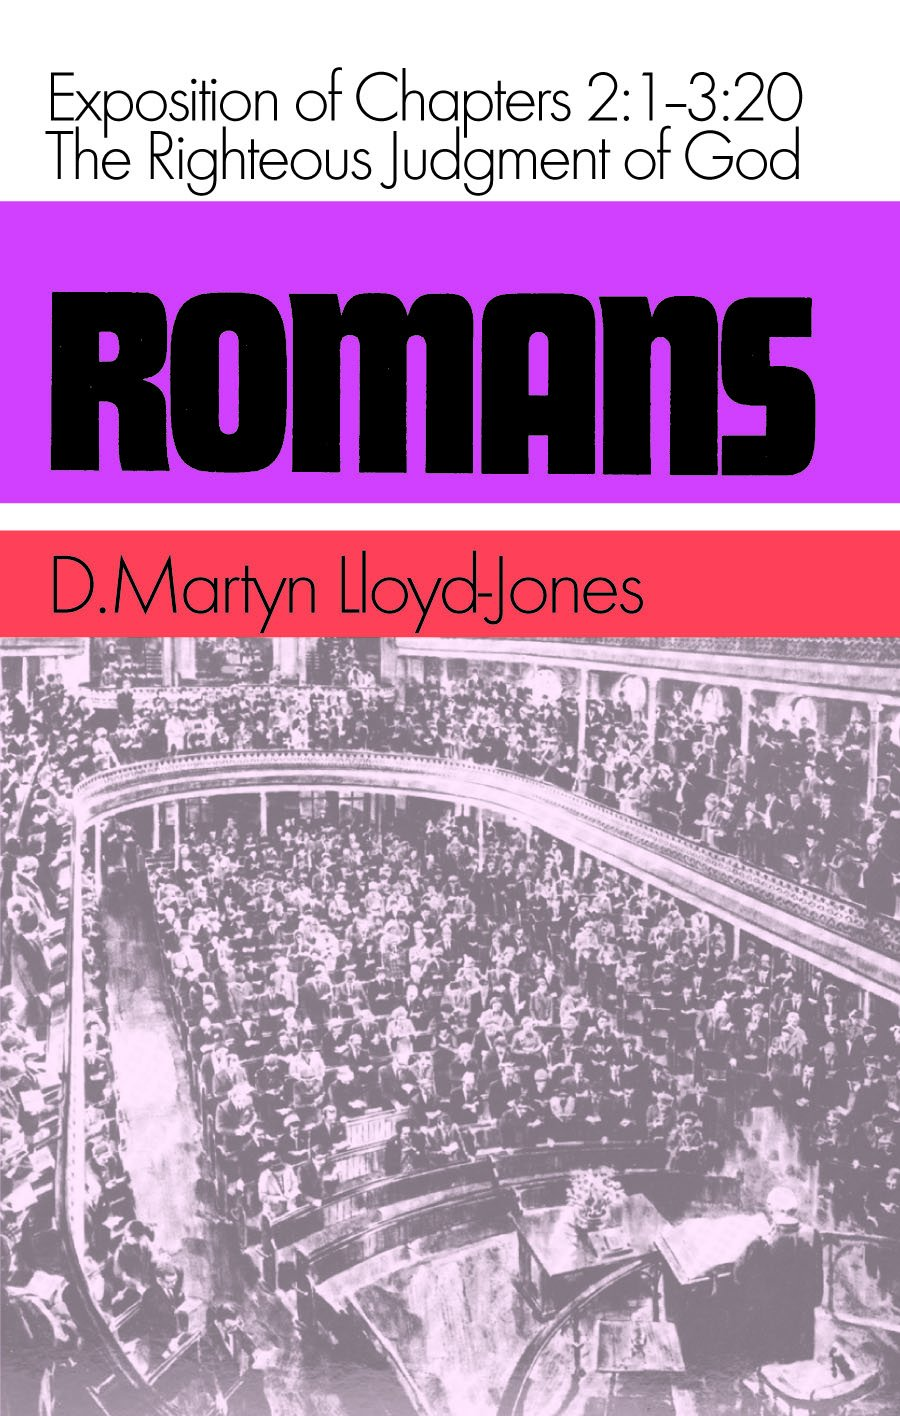 Romans: 1 to 3: 20 - The Righteous Judgement of God An Exposition of Chapters 2